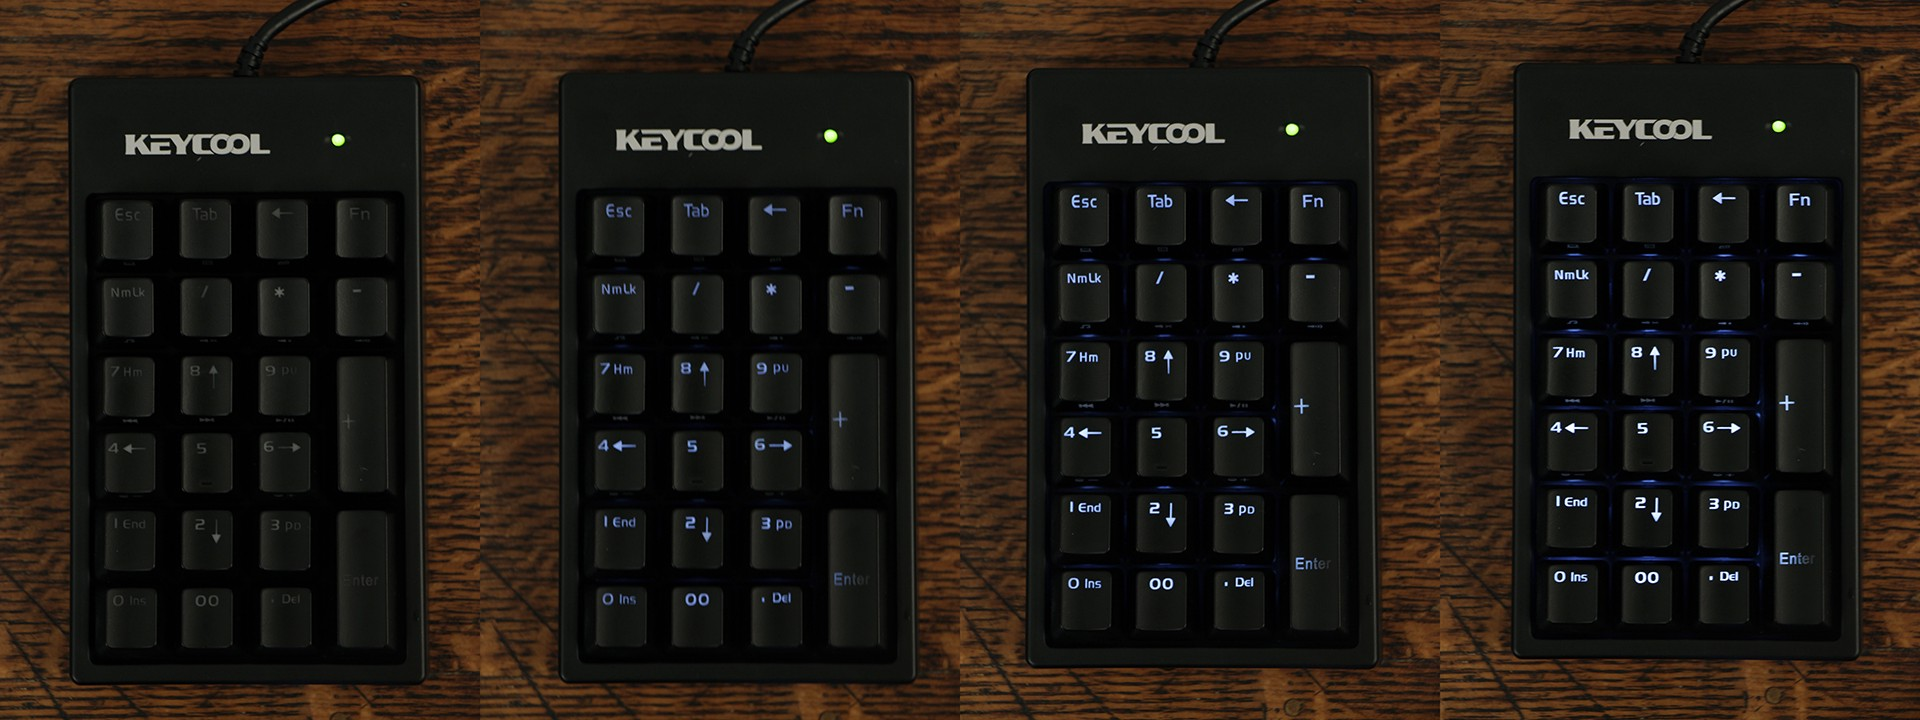 Keycool 22 Key Numeric Keypad Review Mechanical Keyboards